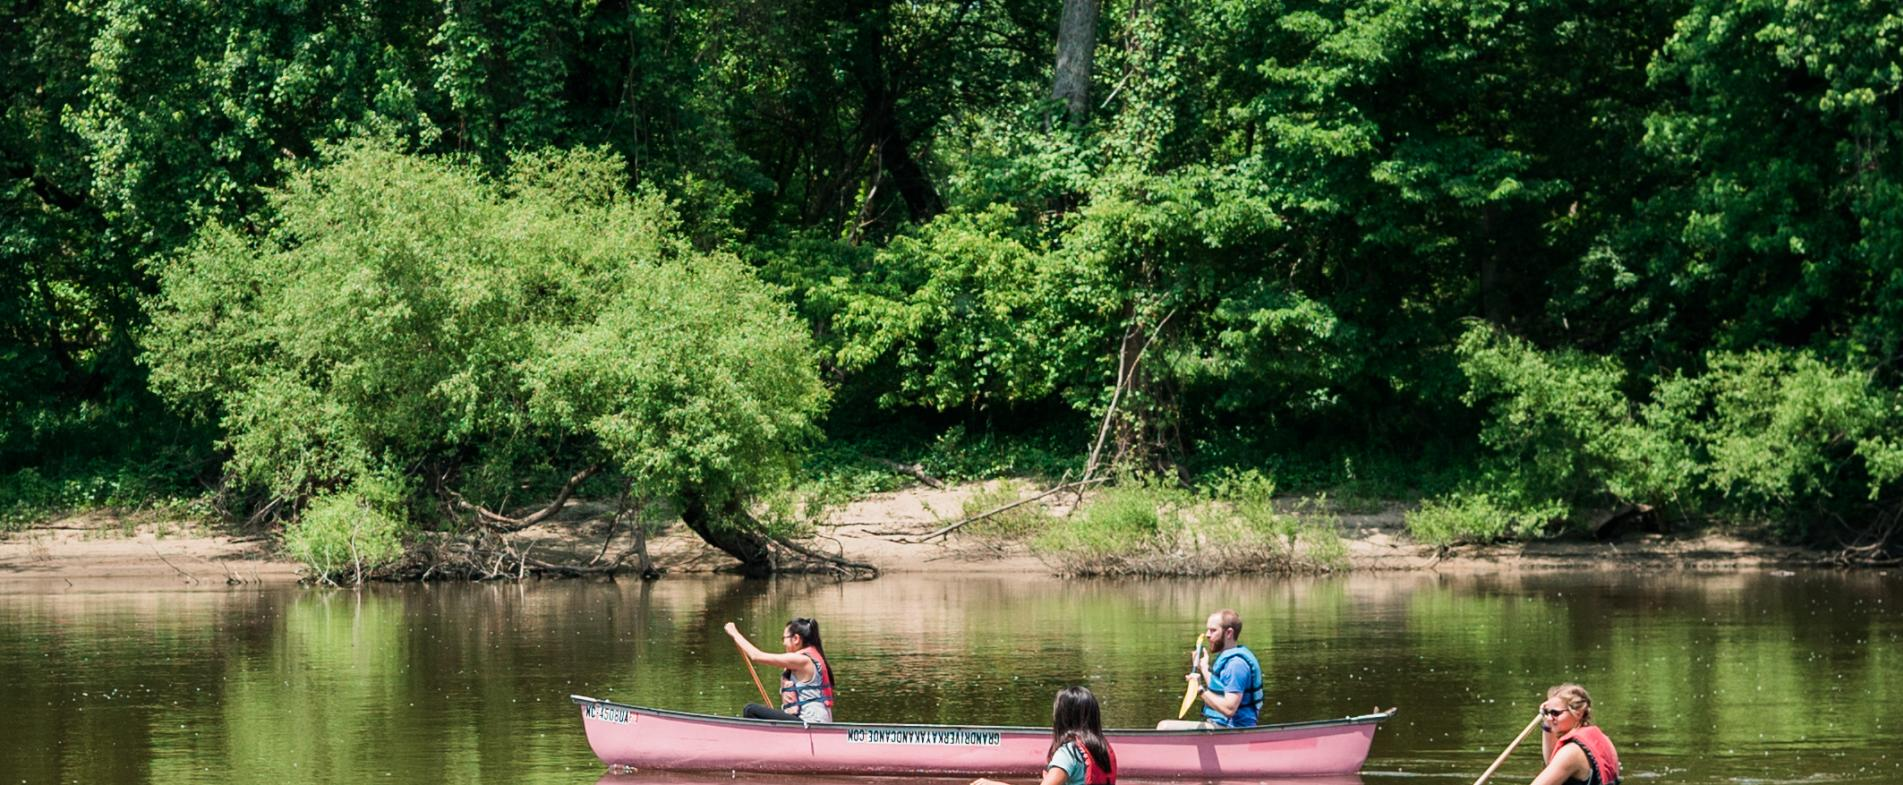 Canoeing on area rivers.